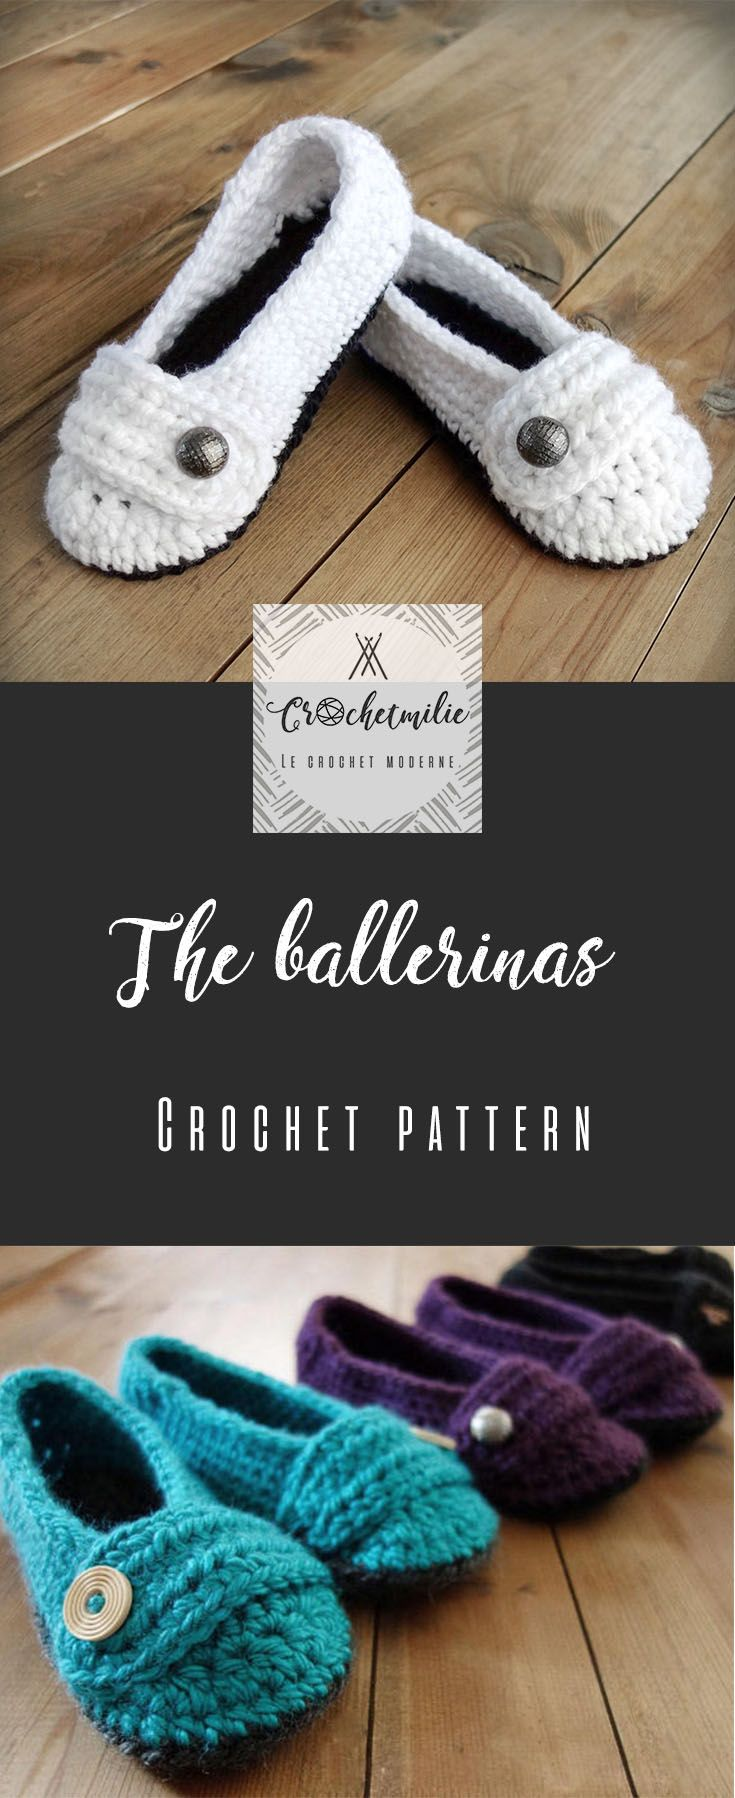 CROCHET PATTERN - The ballerinas from CROCHETMILIE - Cute women slippers with buttons